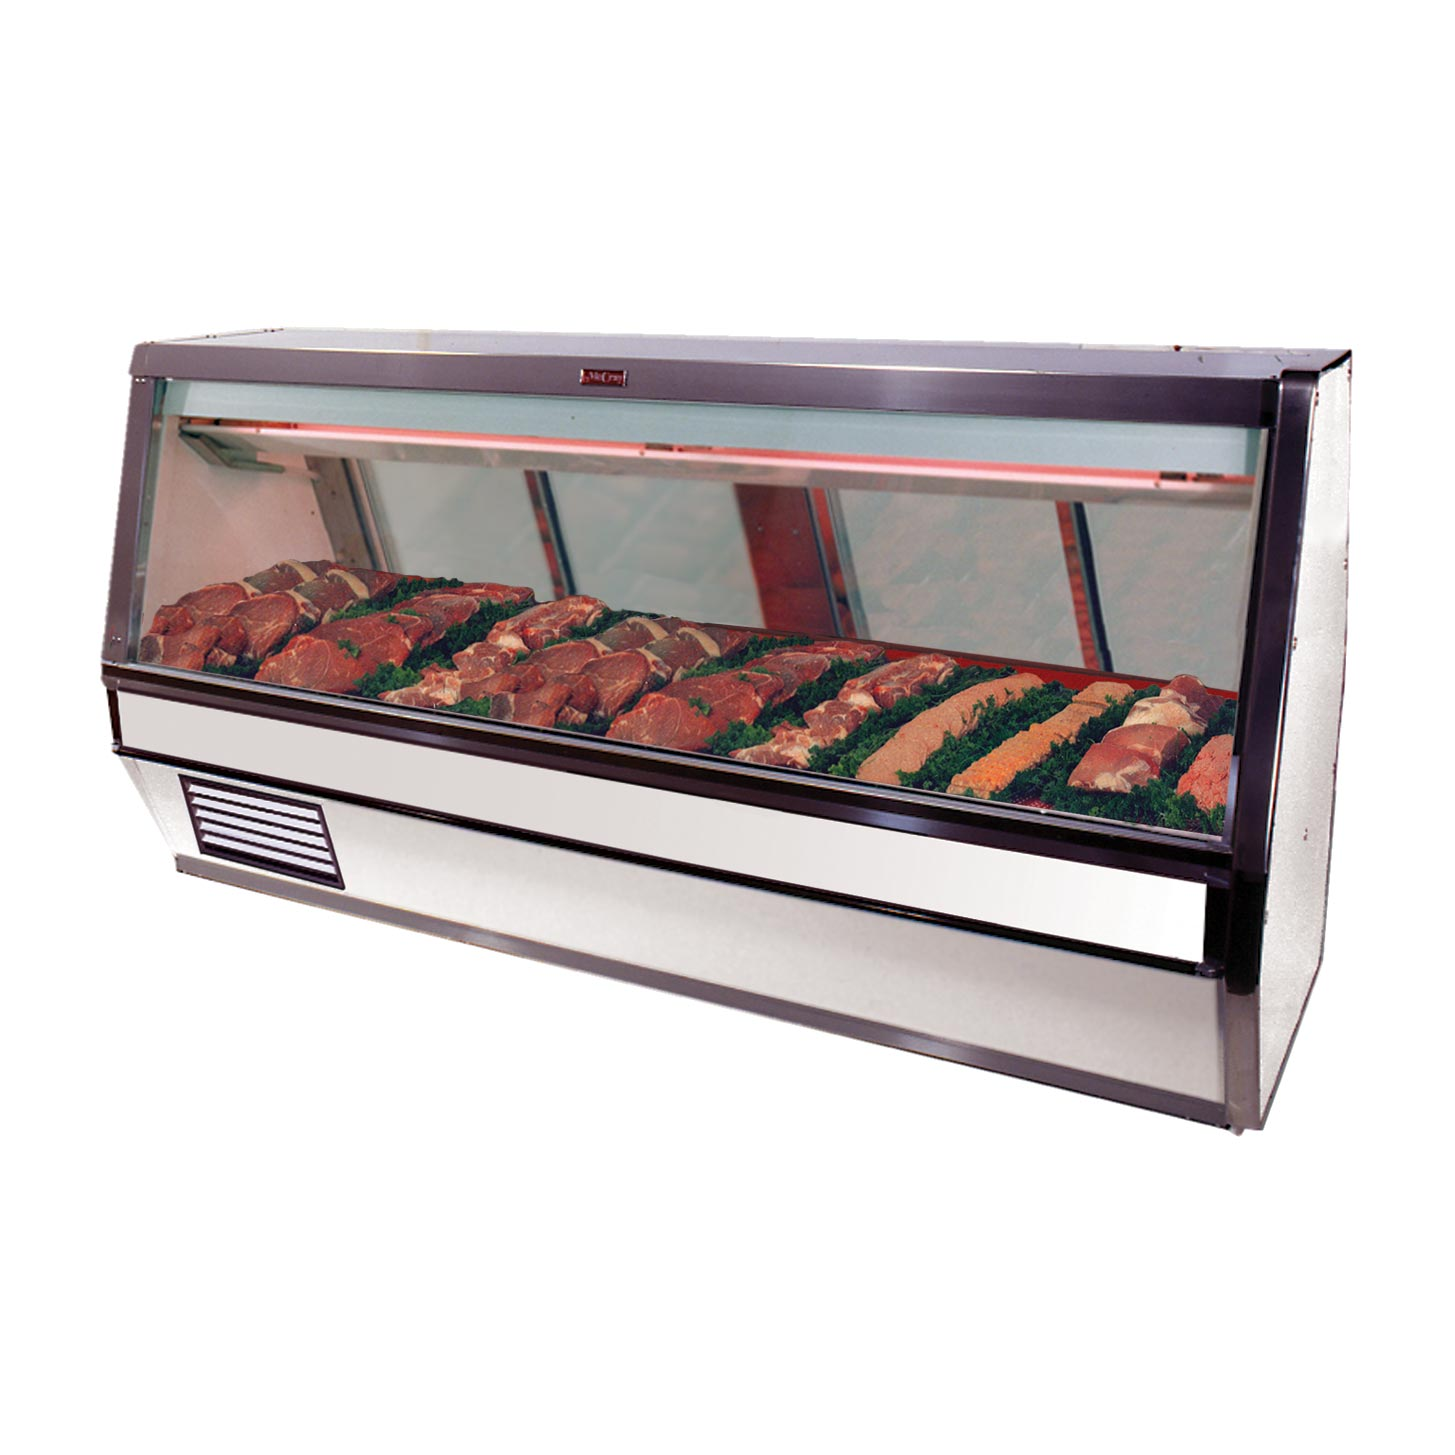 Howard-McCray R-CMS40E-12-S-LED display case, red meat deli